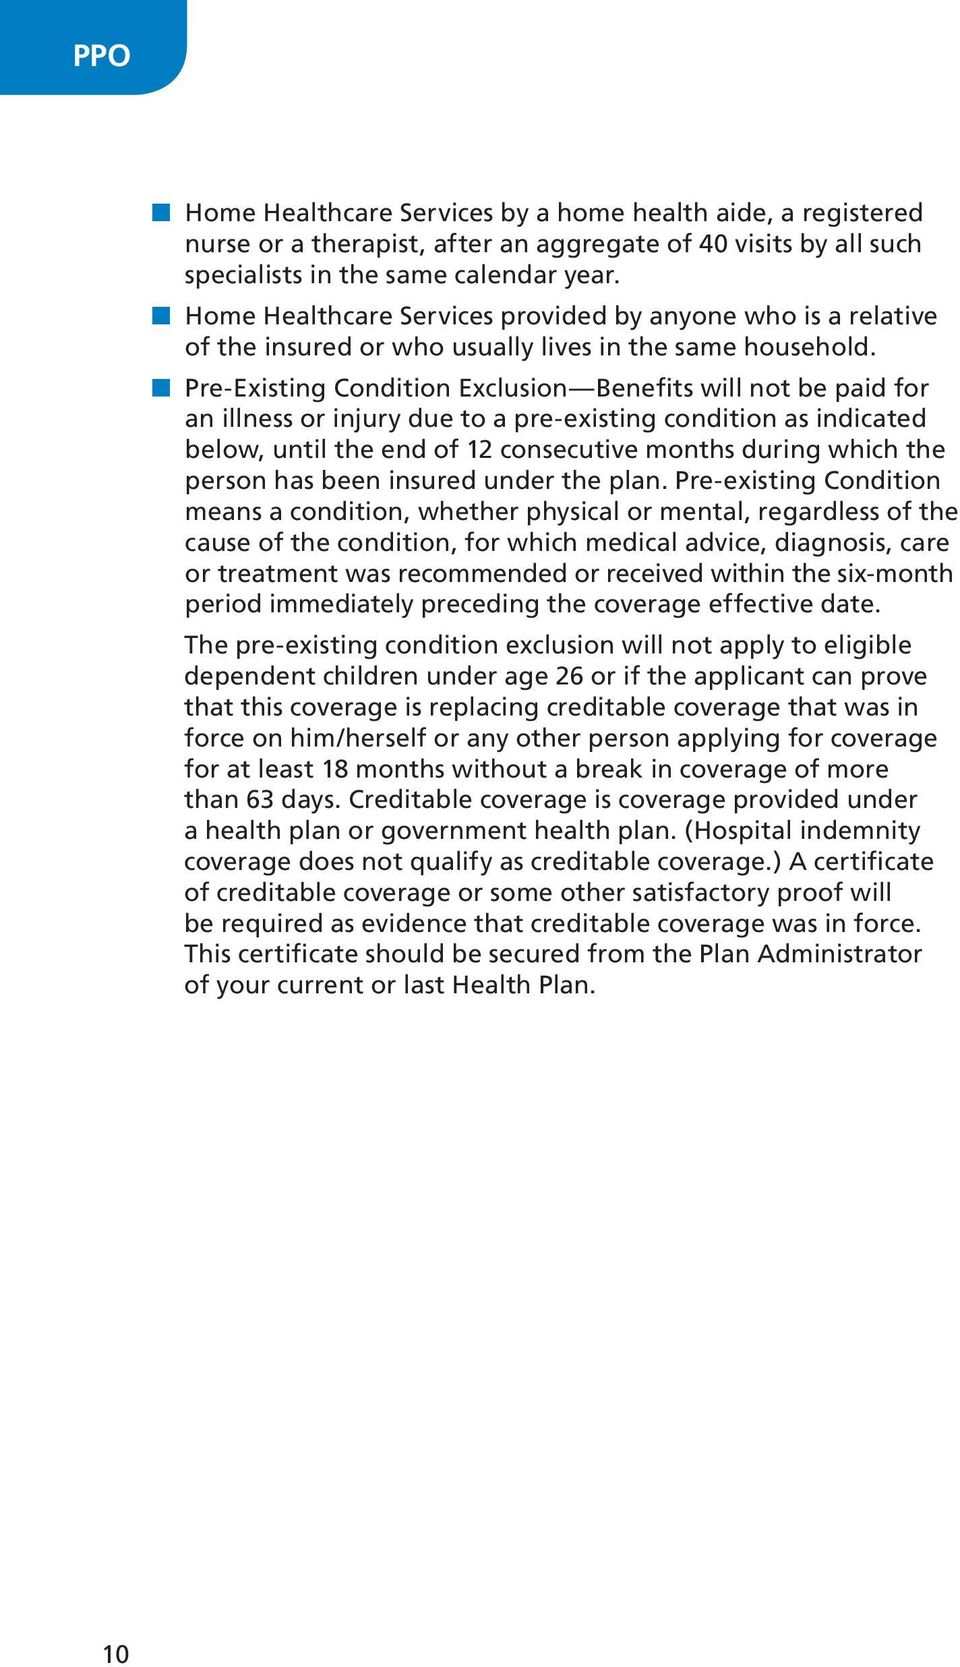 n Pre-Existing Condition Exclusion Benefits will not be paid for an illness or injury due to a pre-existing condition as indicated below, until the end of 12 consecutive months during which the